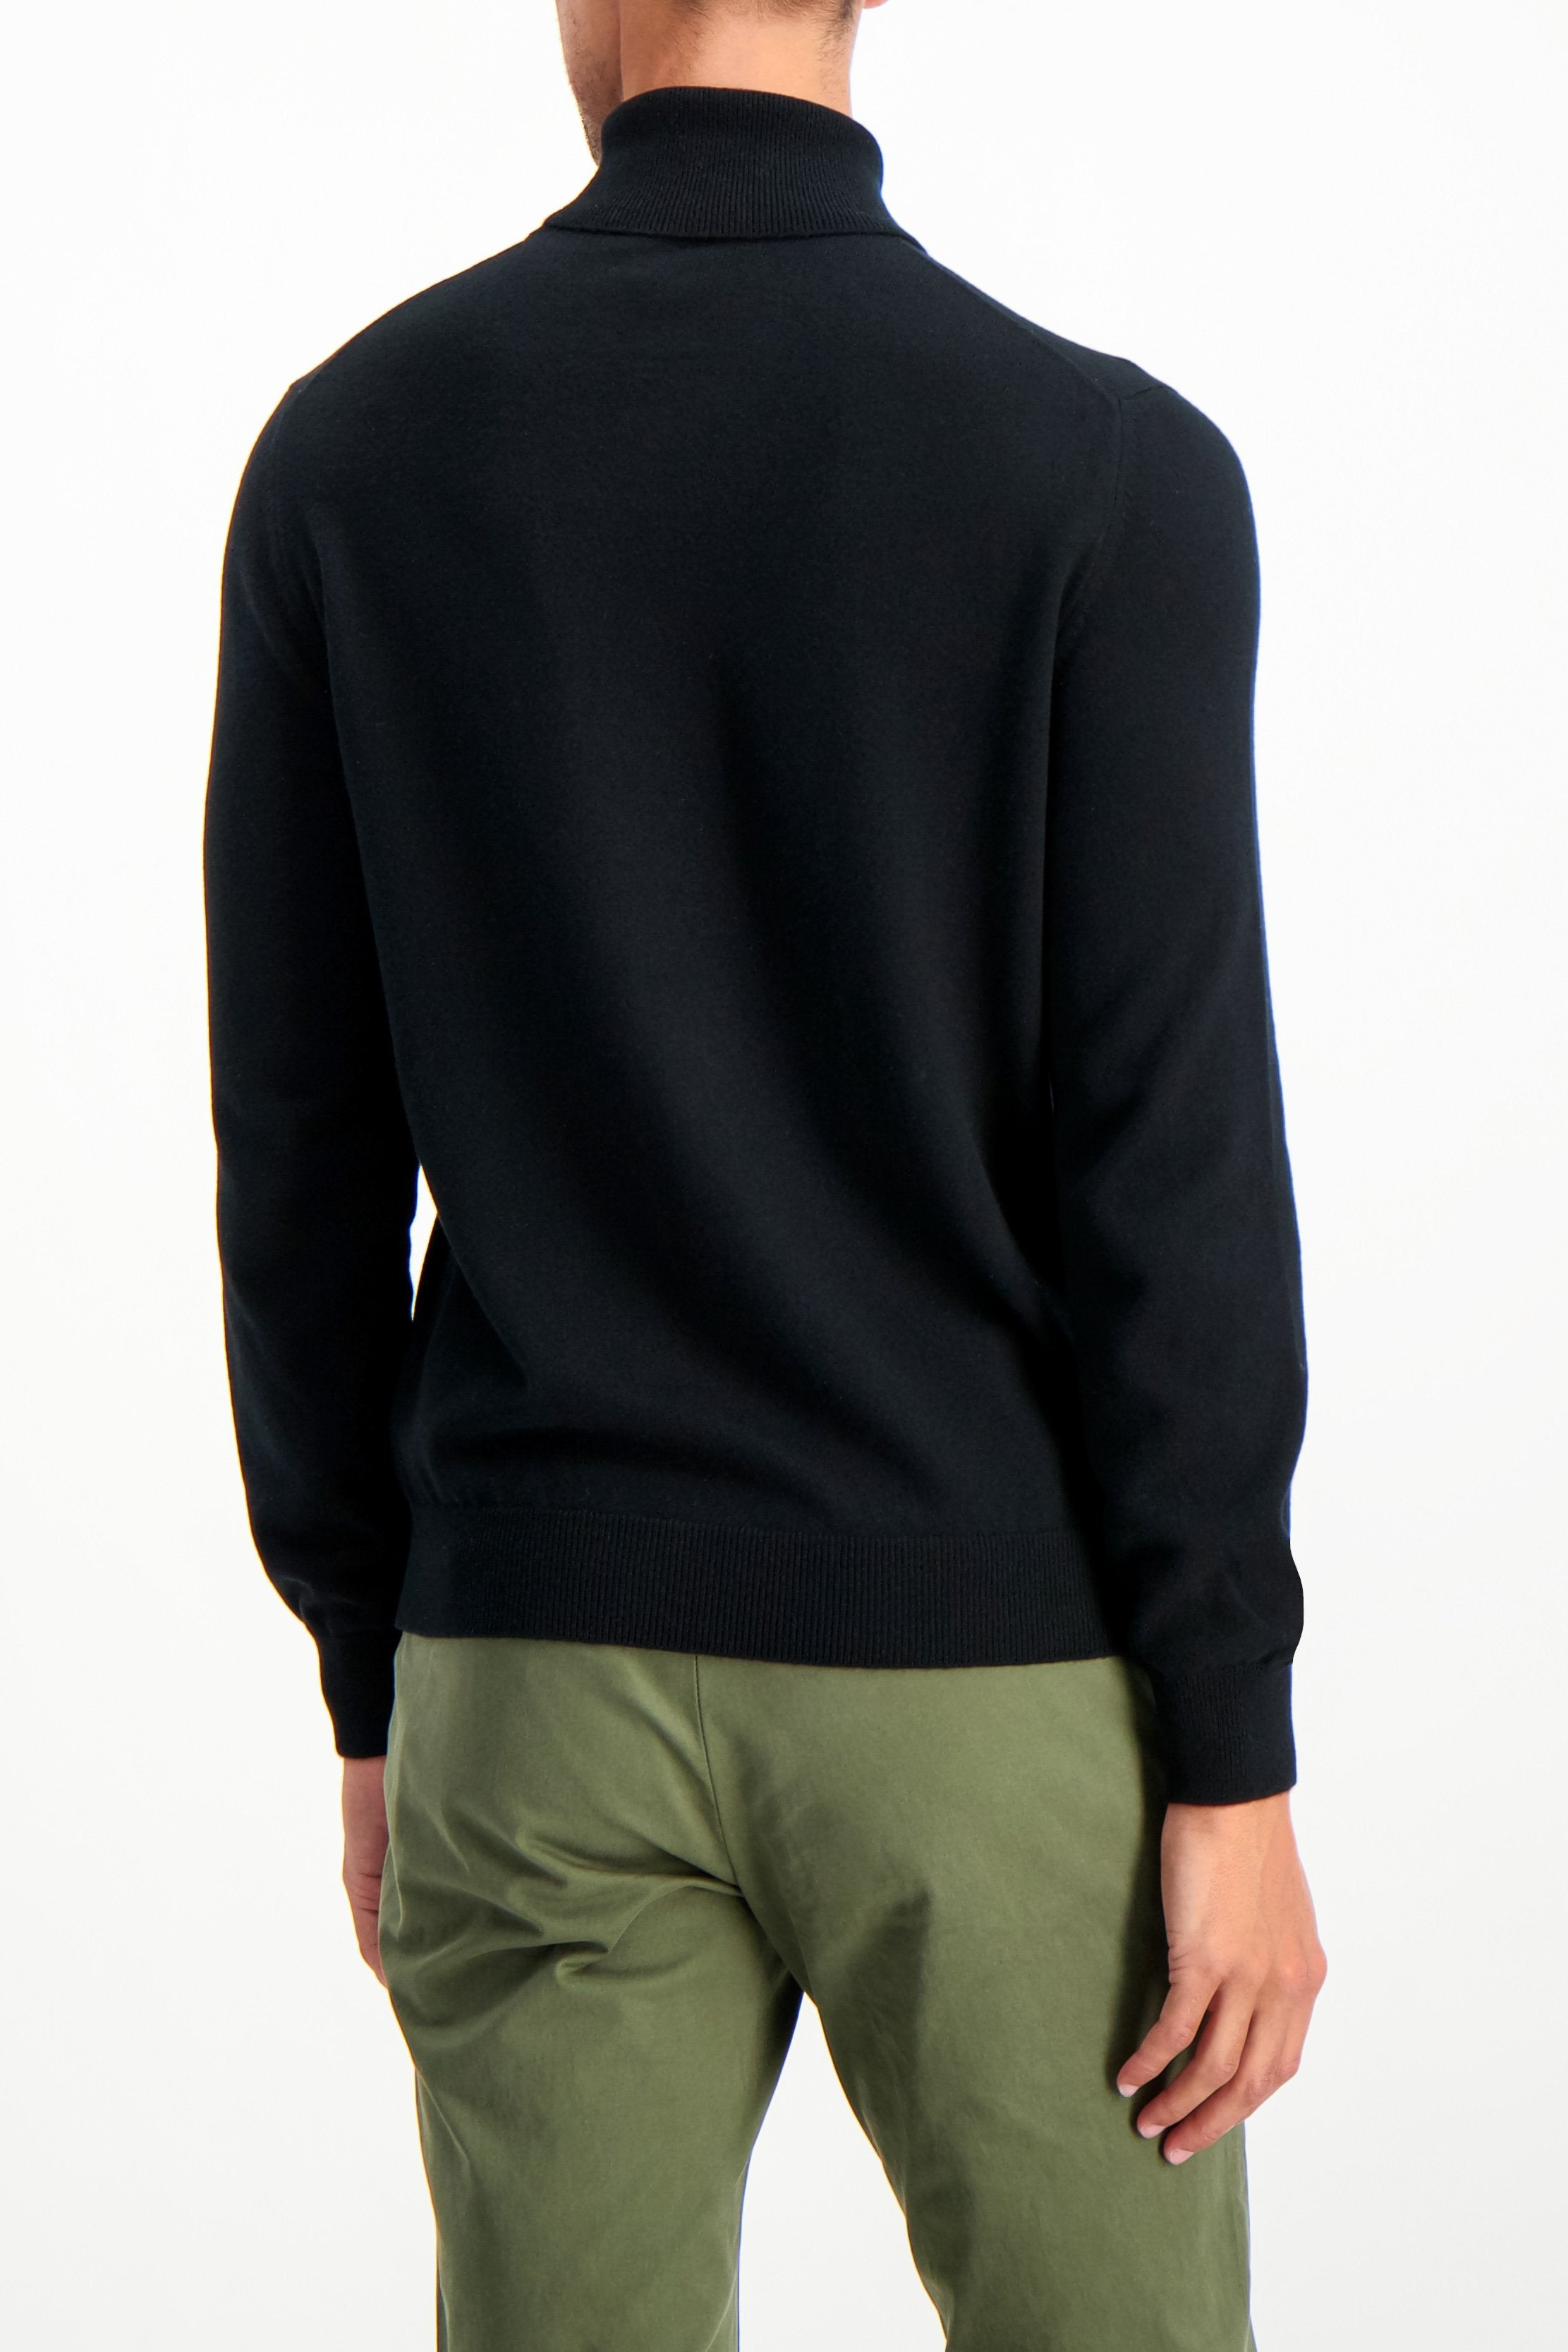 Back Crop Image Of Model Wearing Gran Sasso Turtleneck Sweater Black